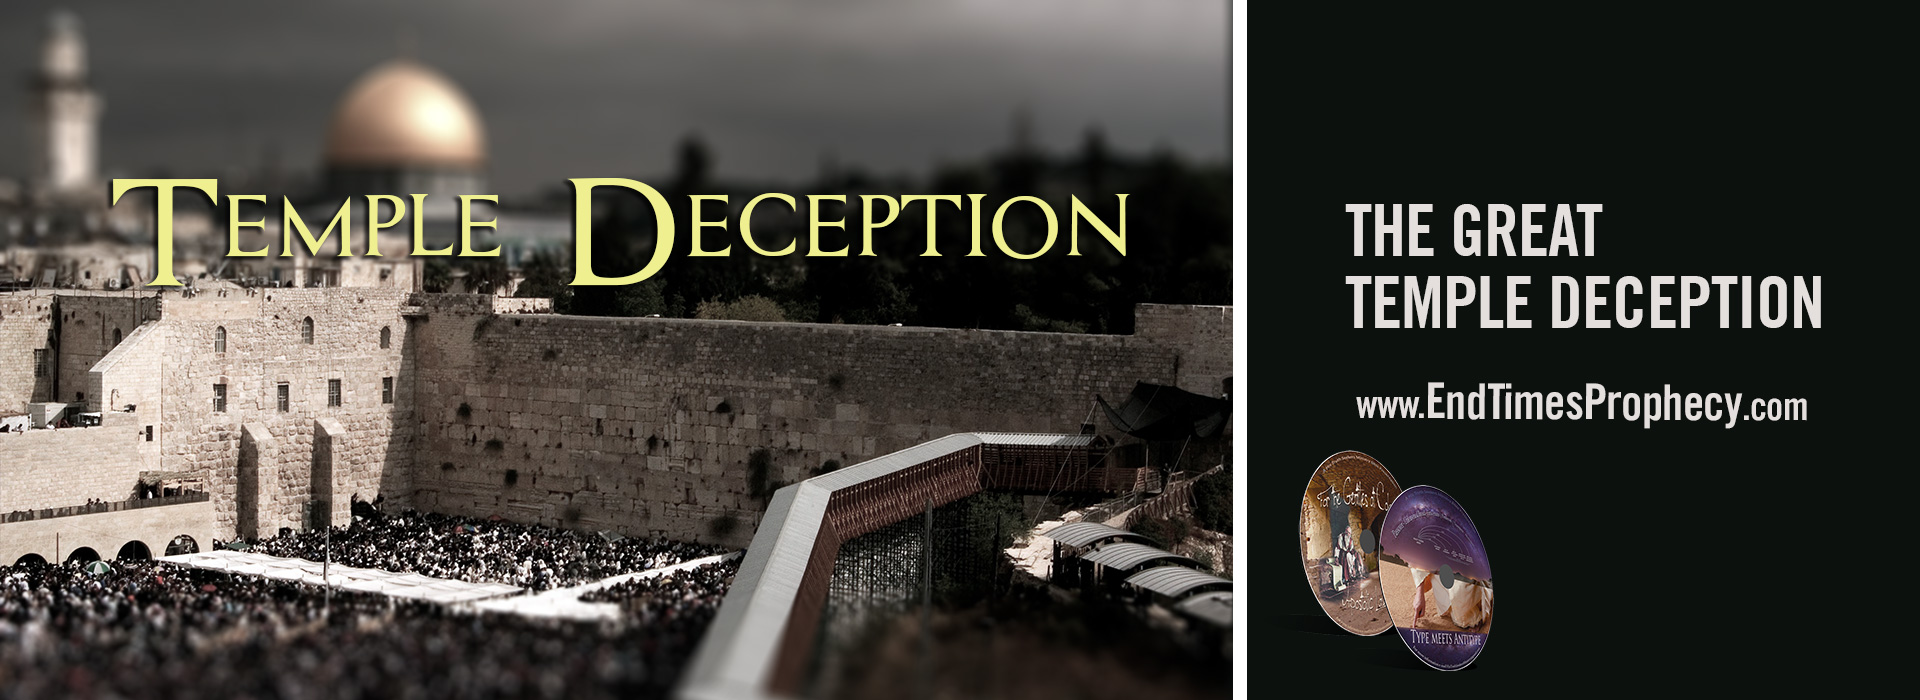 Temple Deception